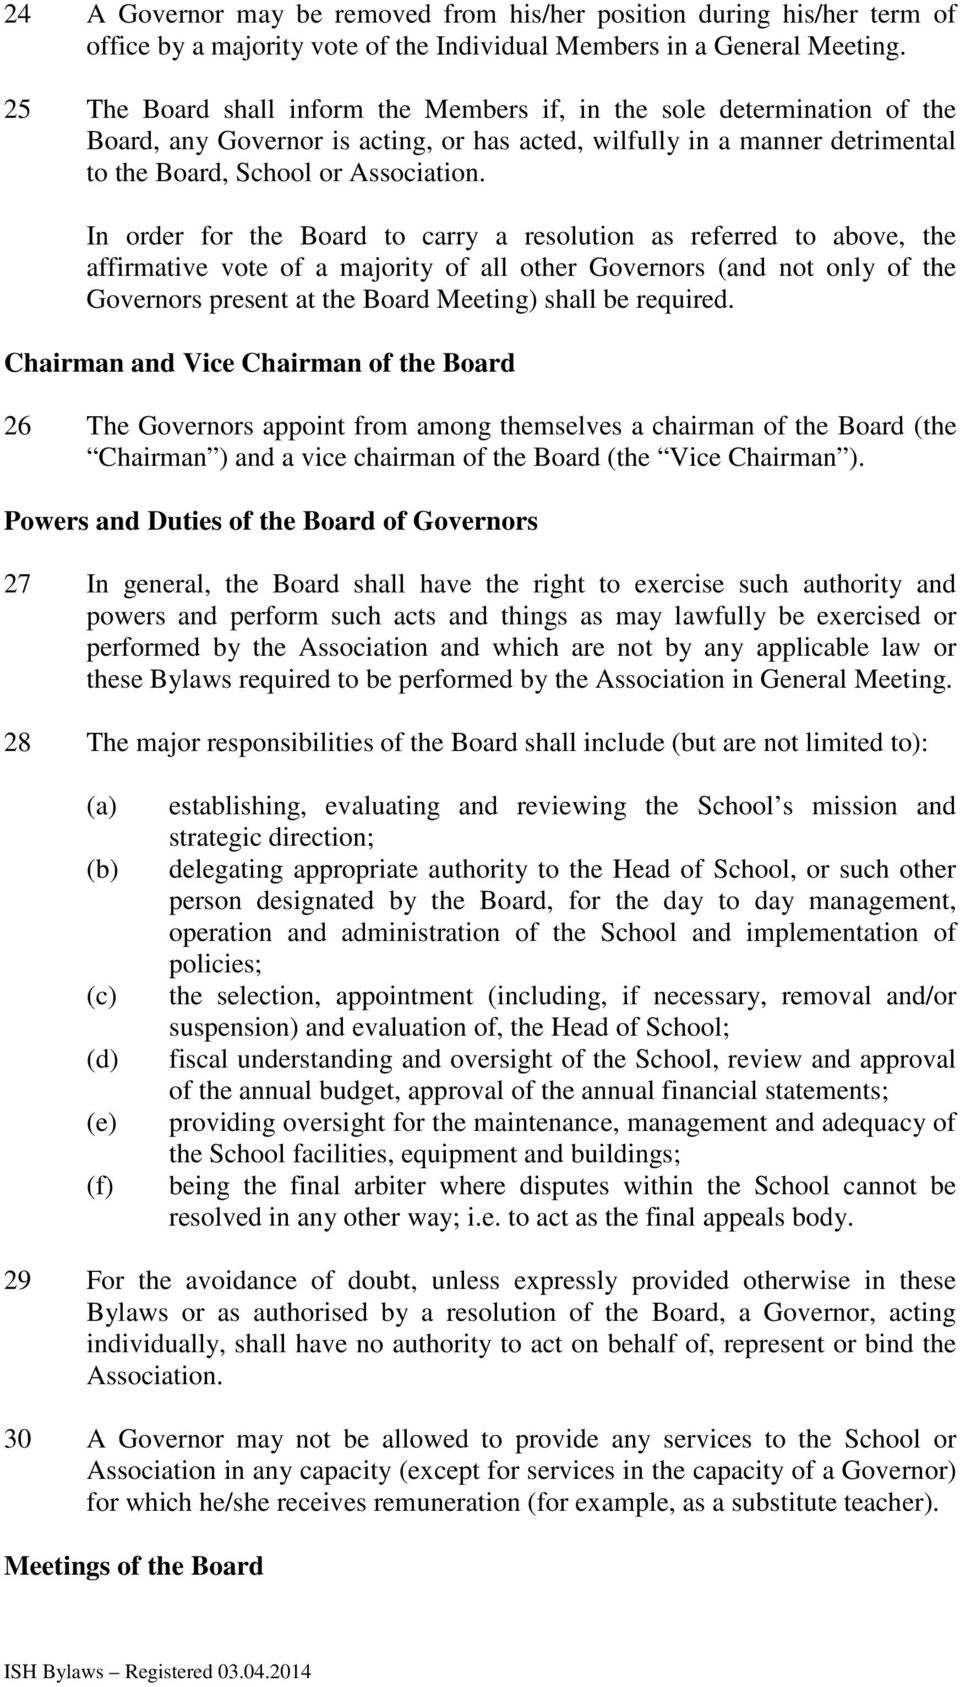 In order for the Board to carry a resolution as referred to above, the affirmative vote of a majority of all other Governors (and not only of the Governors present at the Board Meeting) shall be